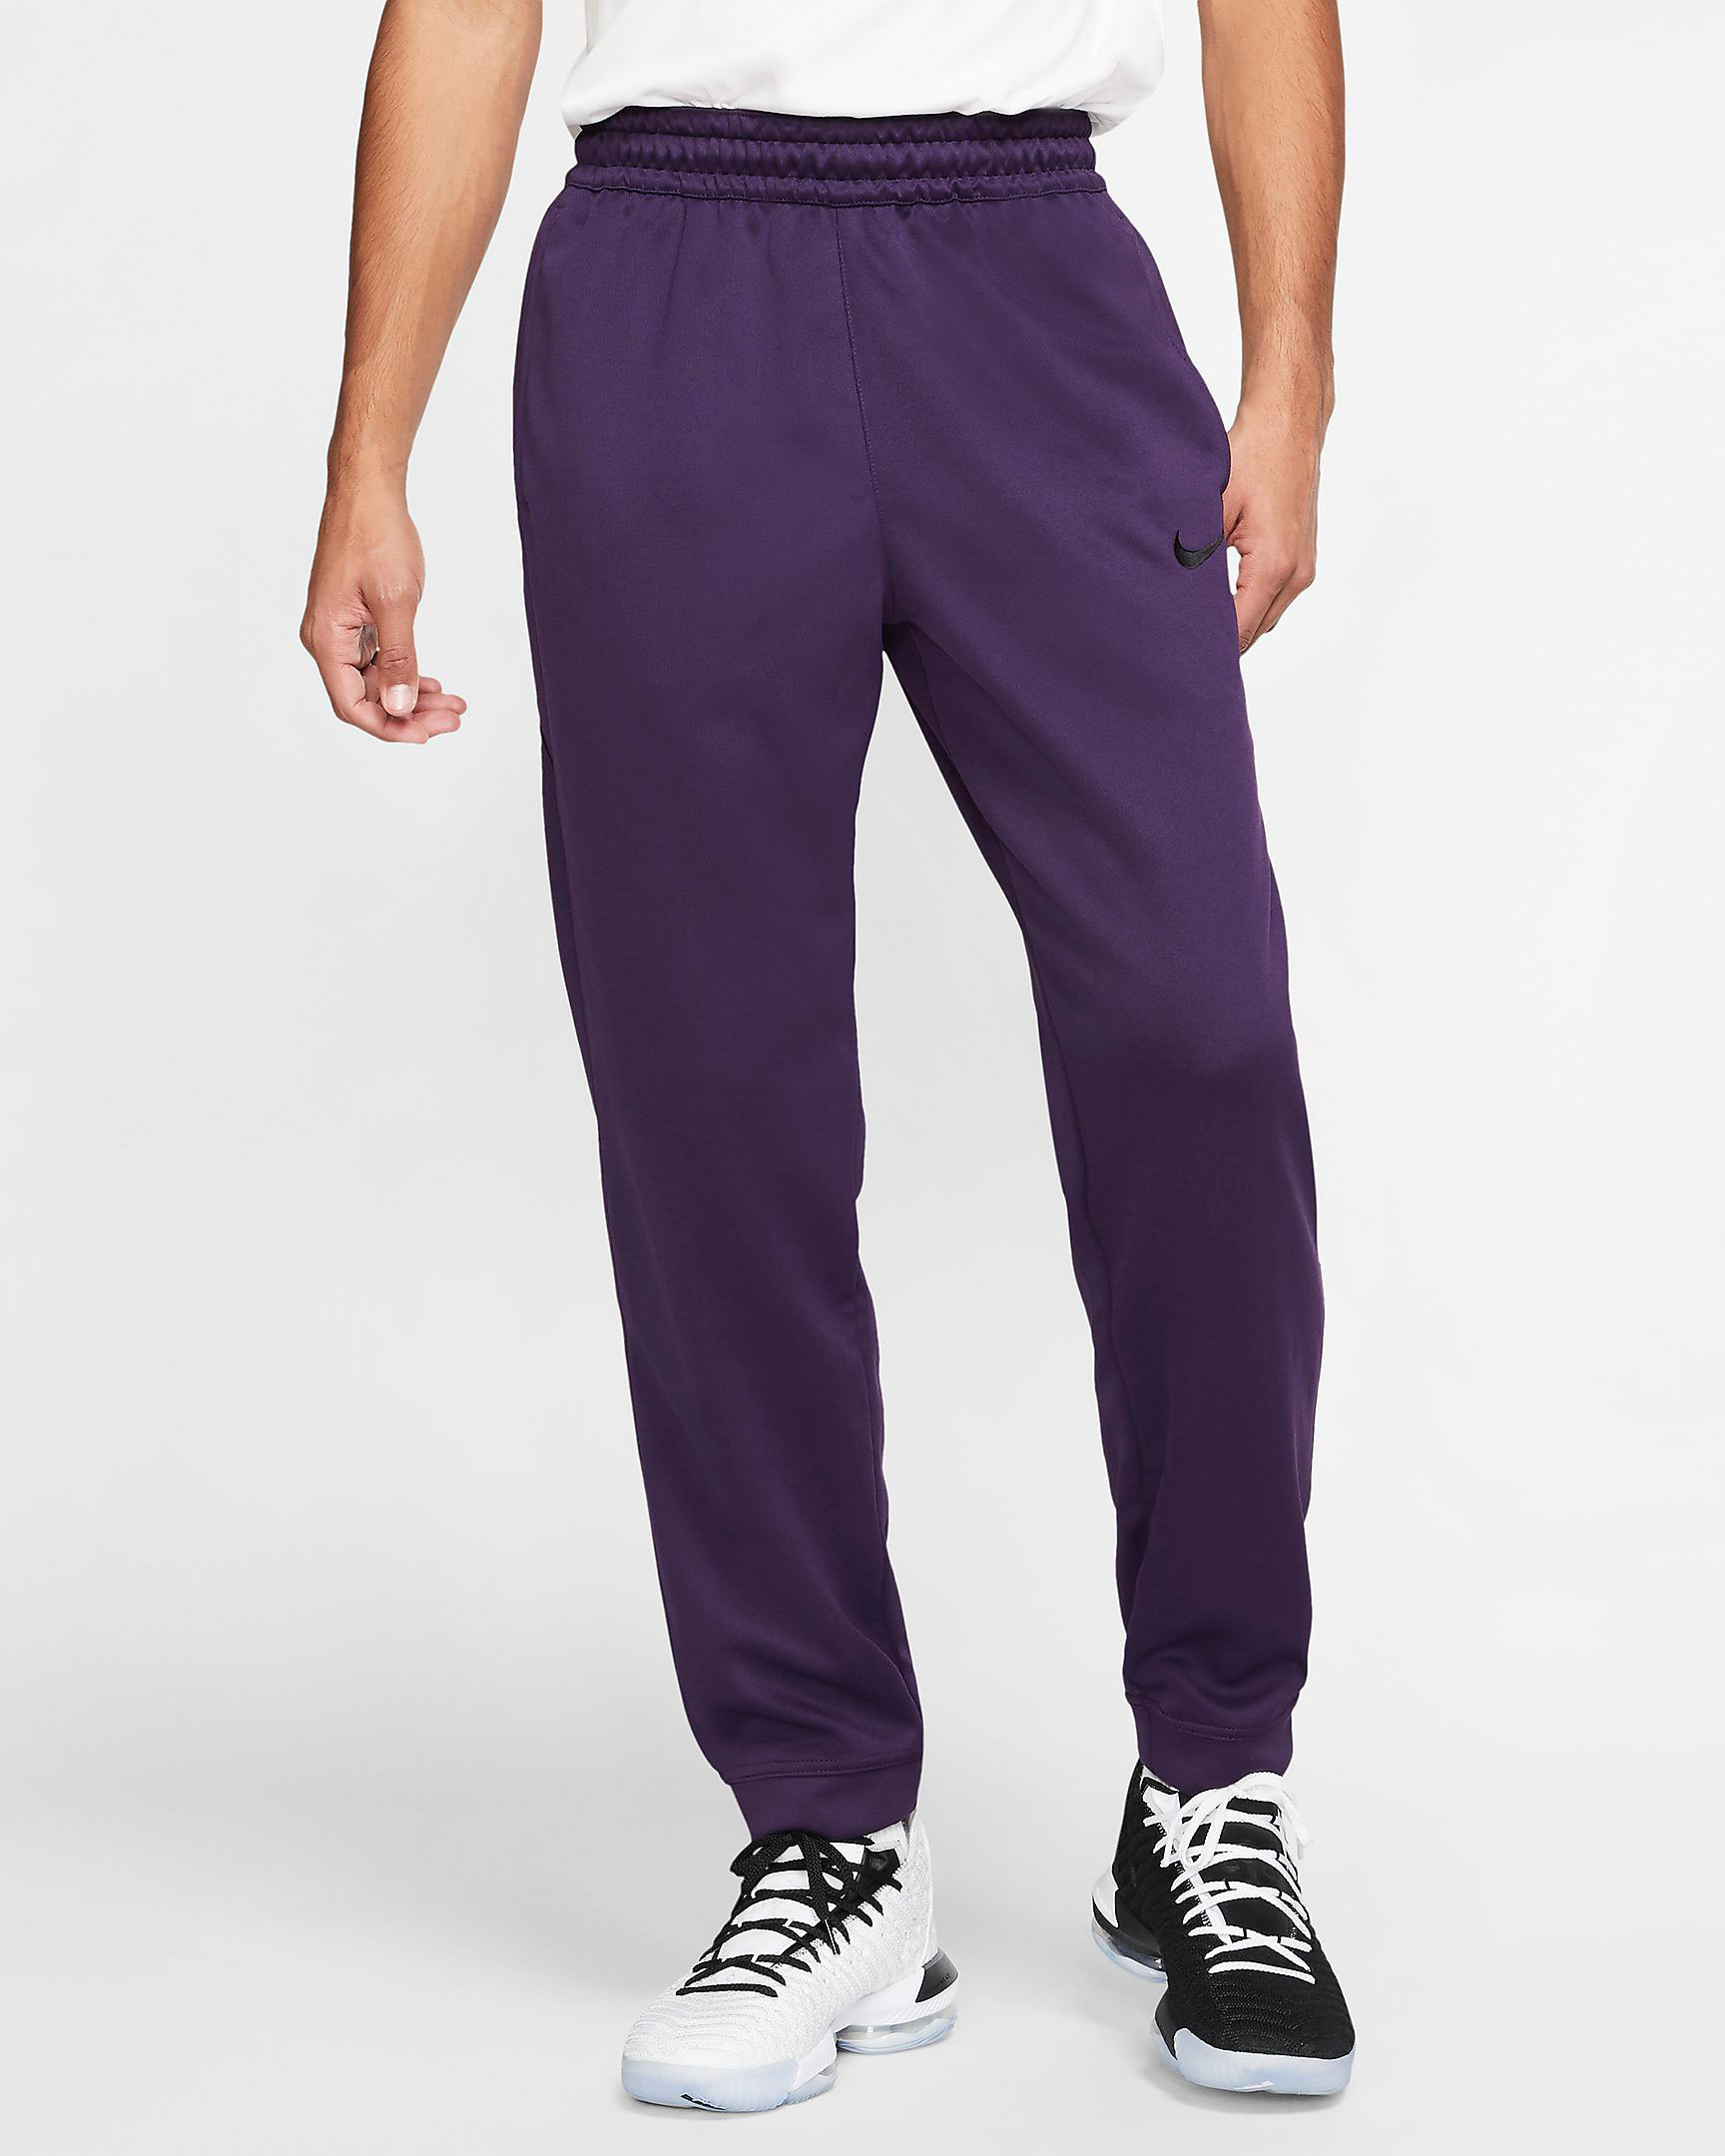 nike-basketball-grand-purple-pants